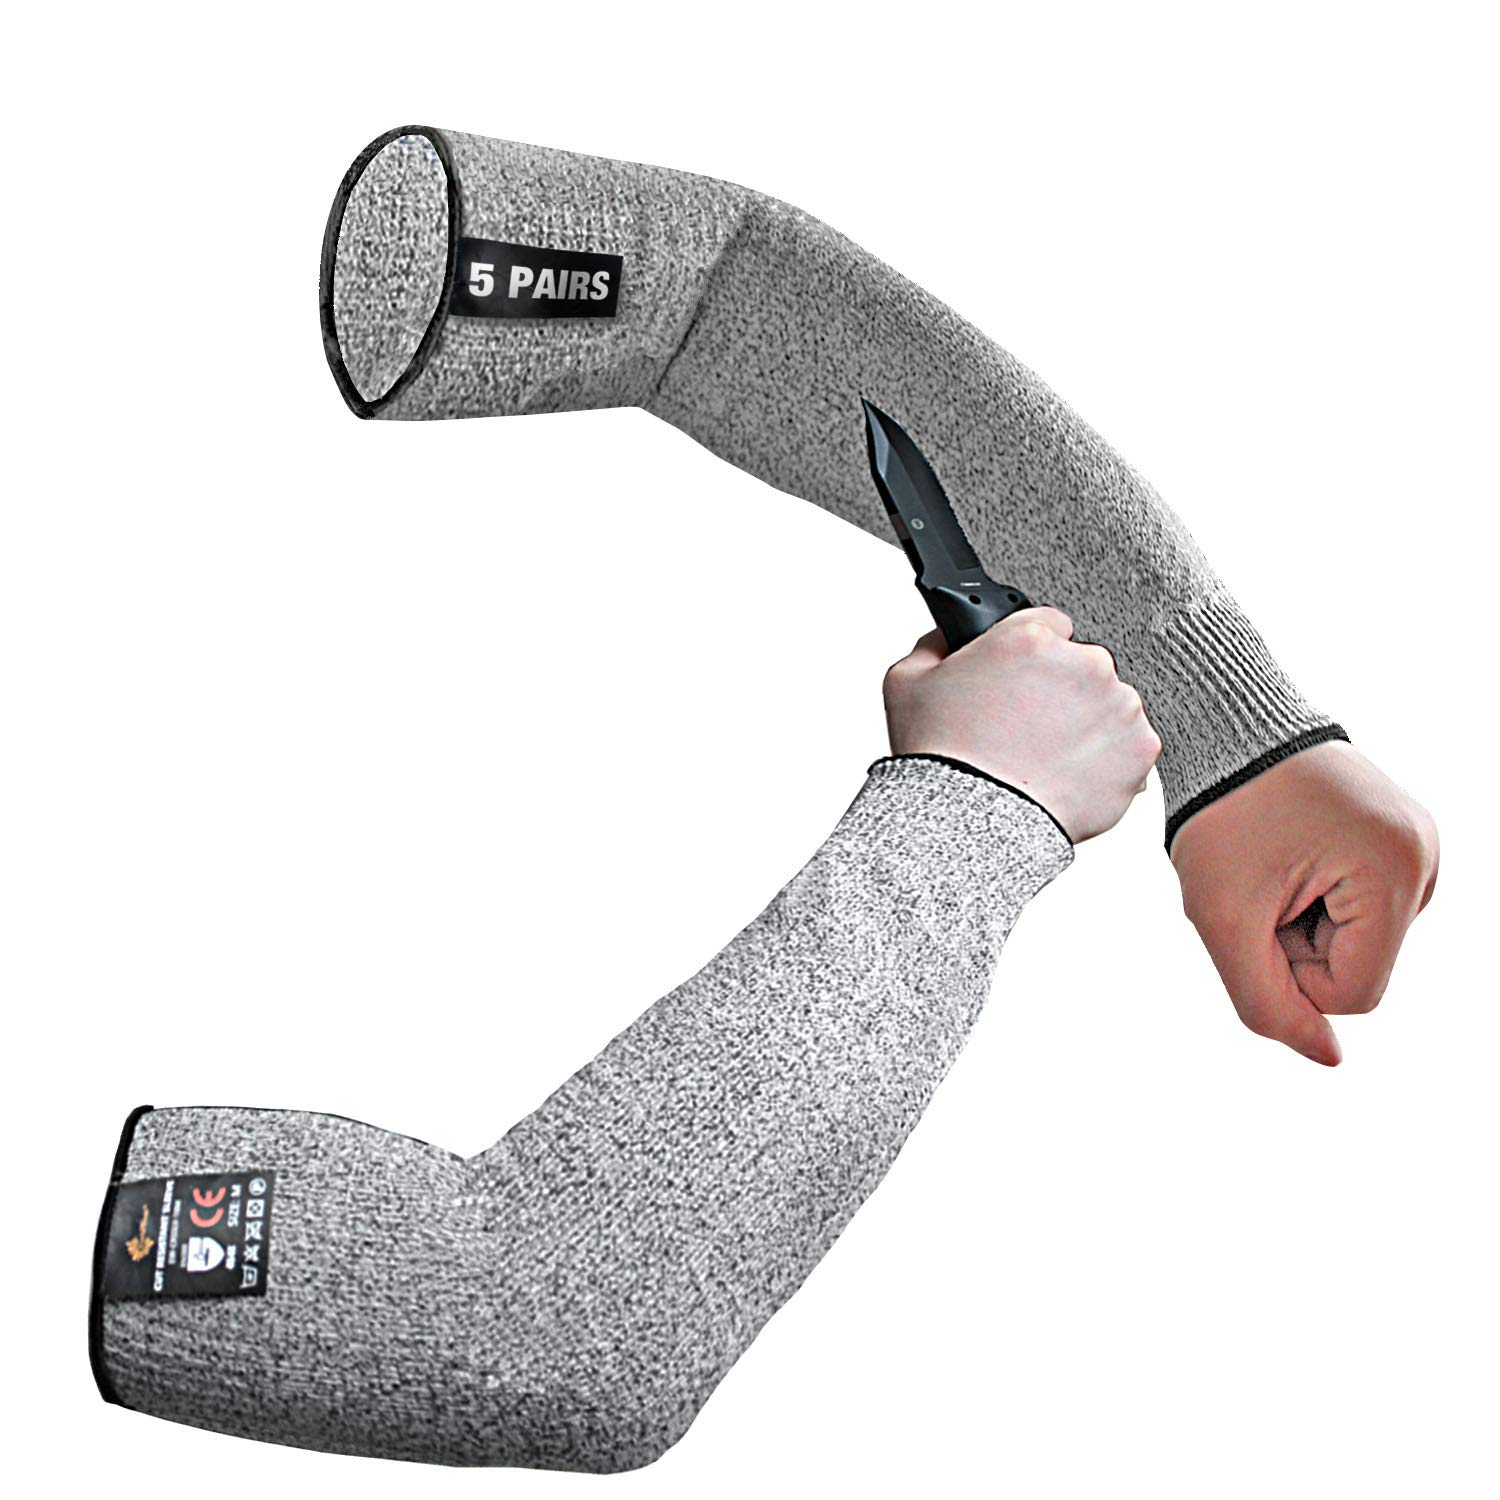 Evridwear 1 Pr/Pack Cut Resistant Sleeves for Arm Safety in Level 5,Arm Sleeves (5 Pairs L size, Gray No Thumb Hole)